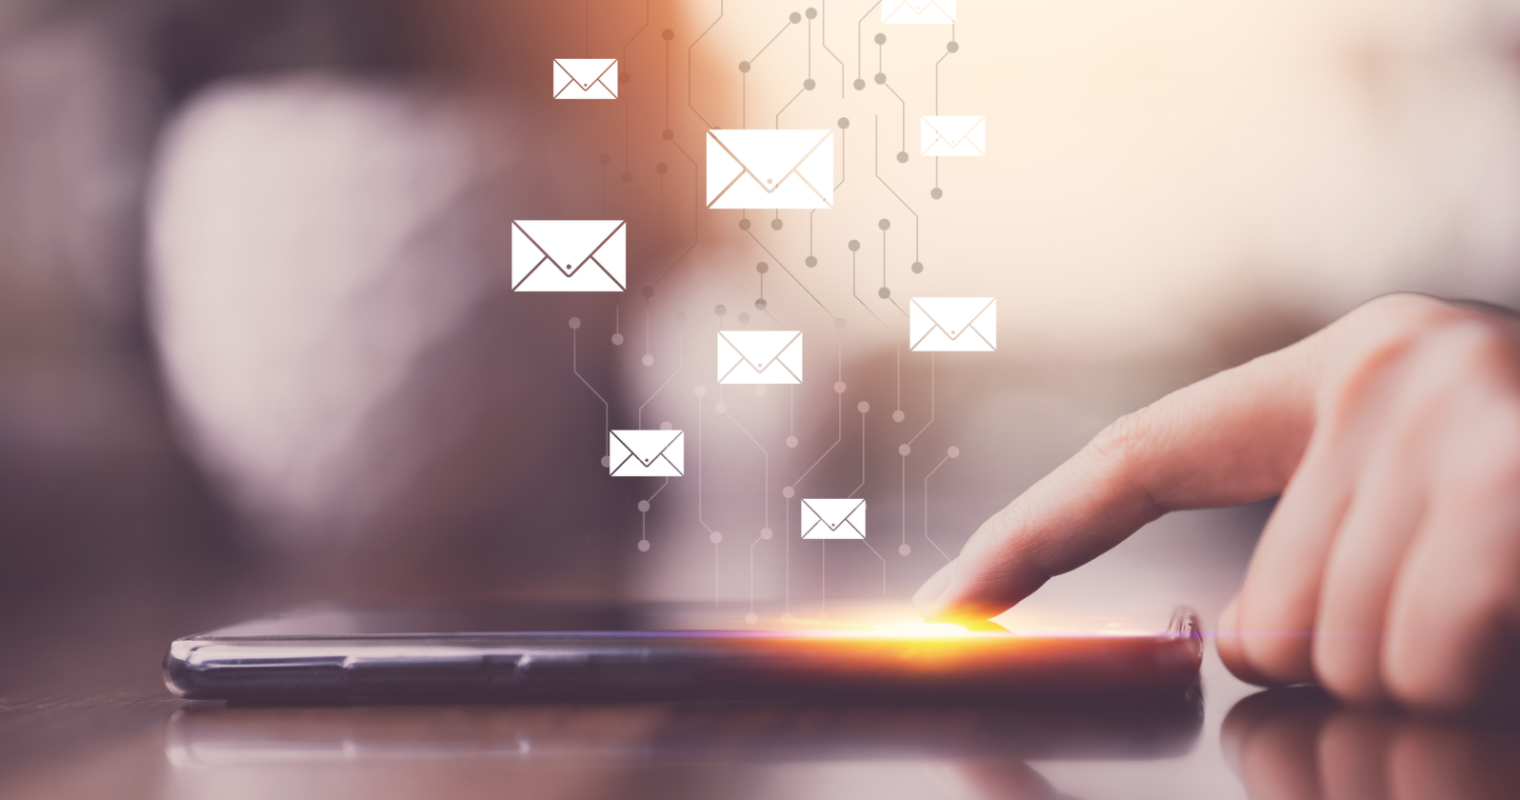 How to Find Anyone's Email Address in 60 Seconds or Less